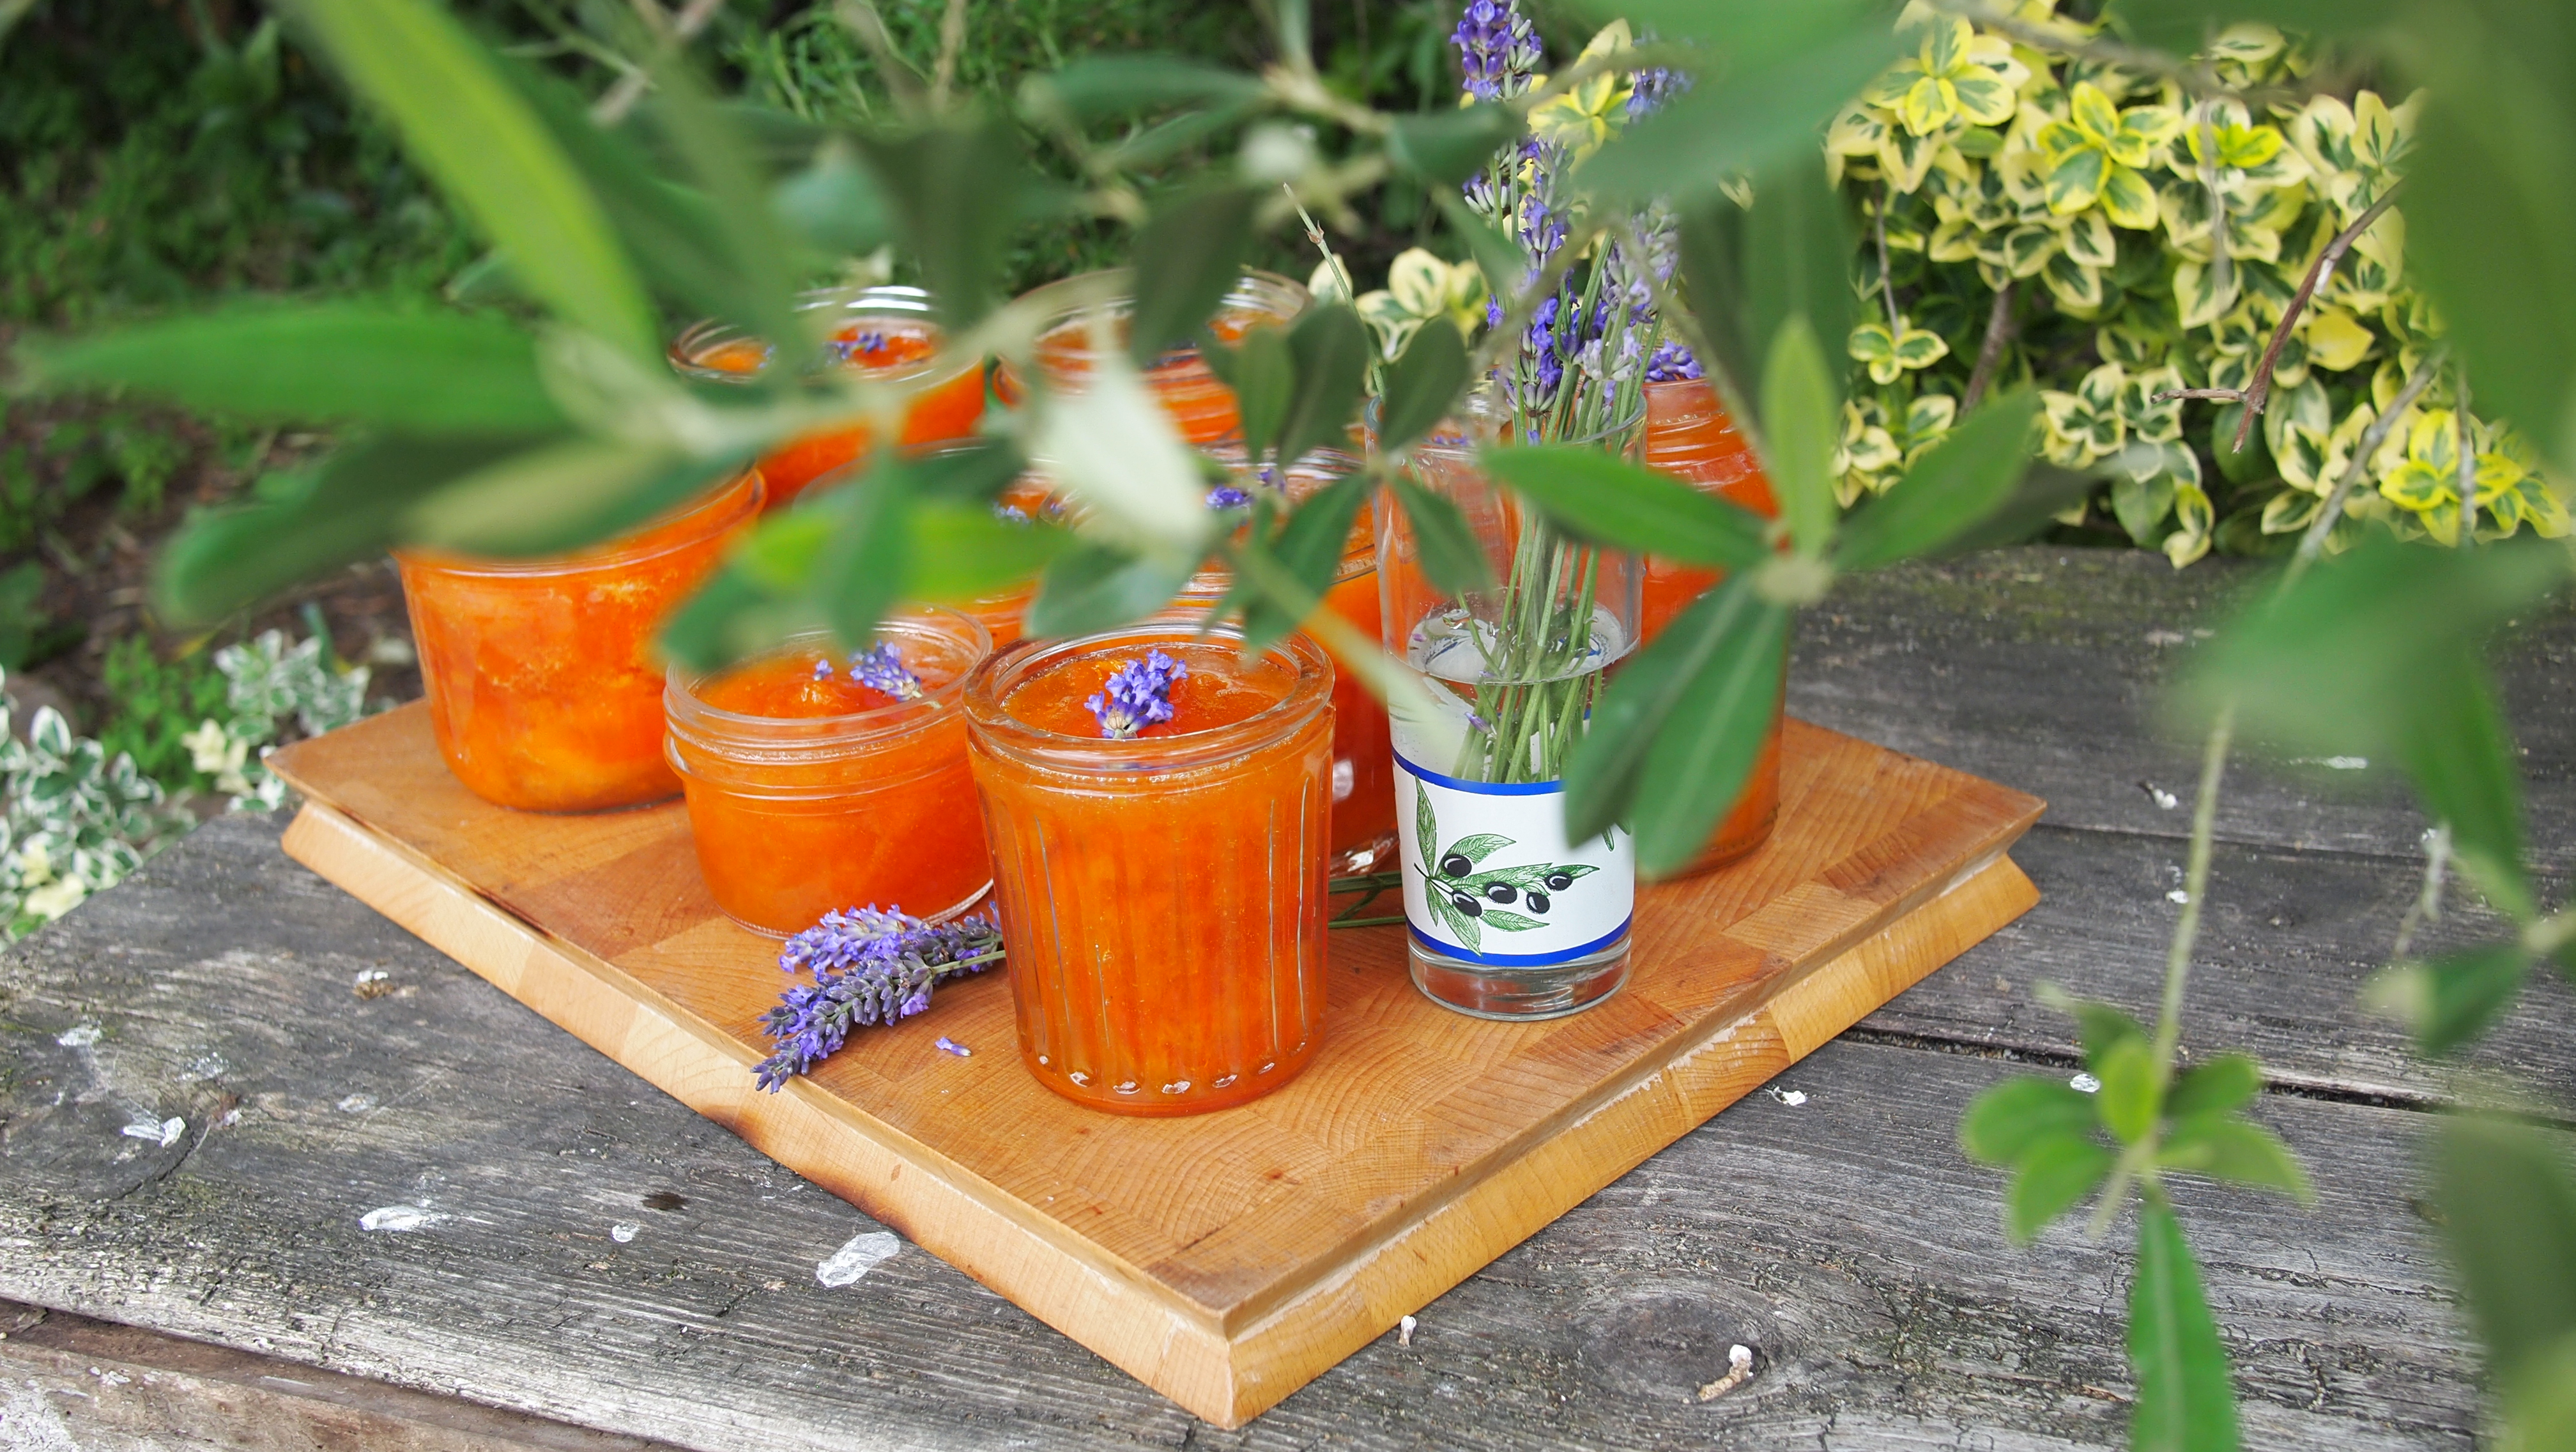 ... Summer Preserve ~ French Set Apricot and Lavender Jam (Confiture